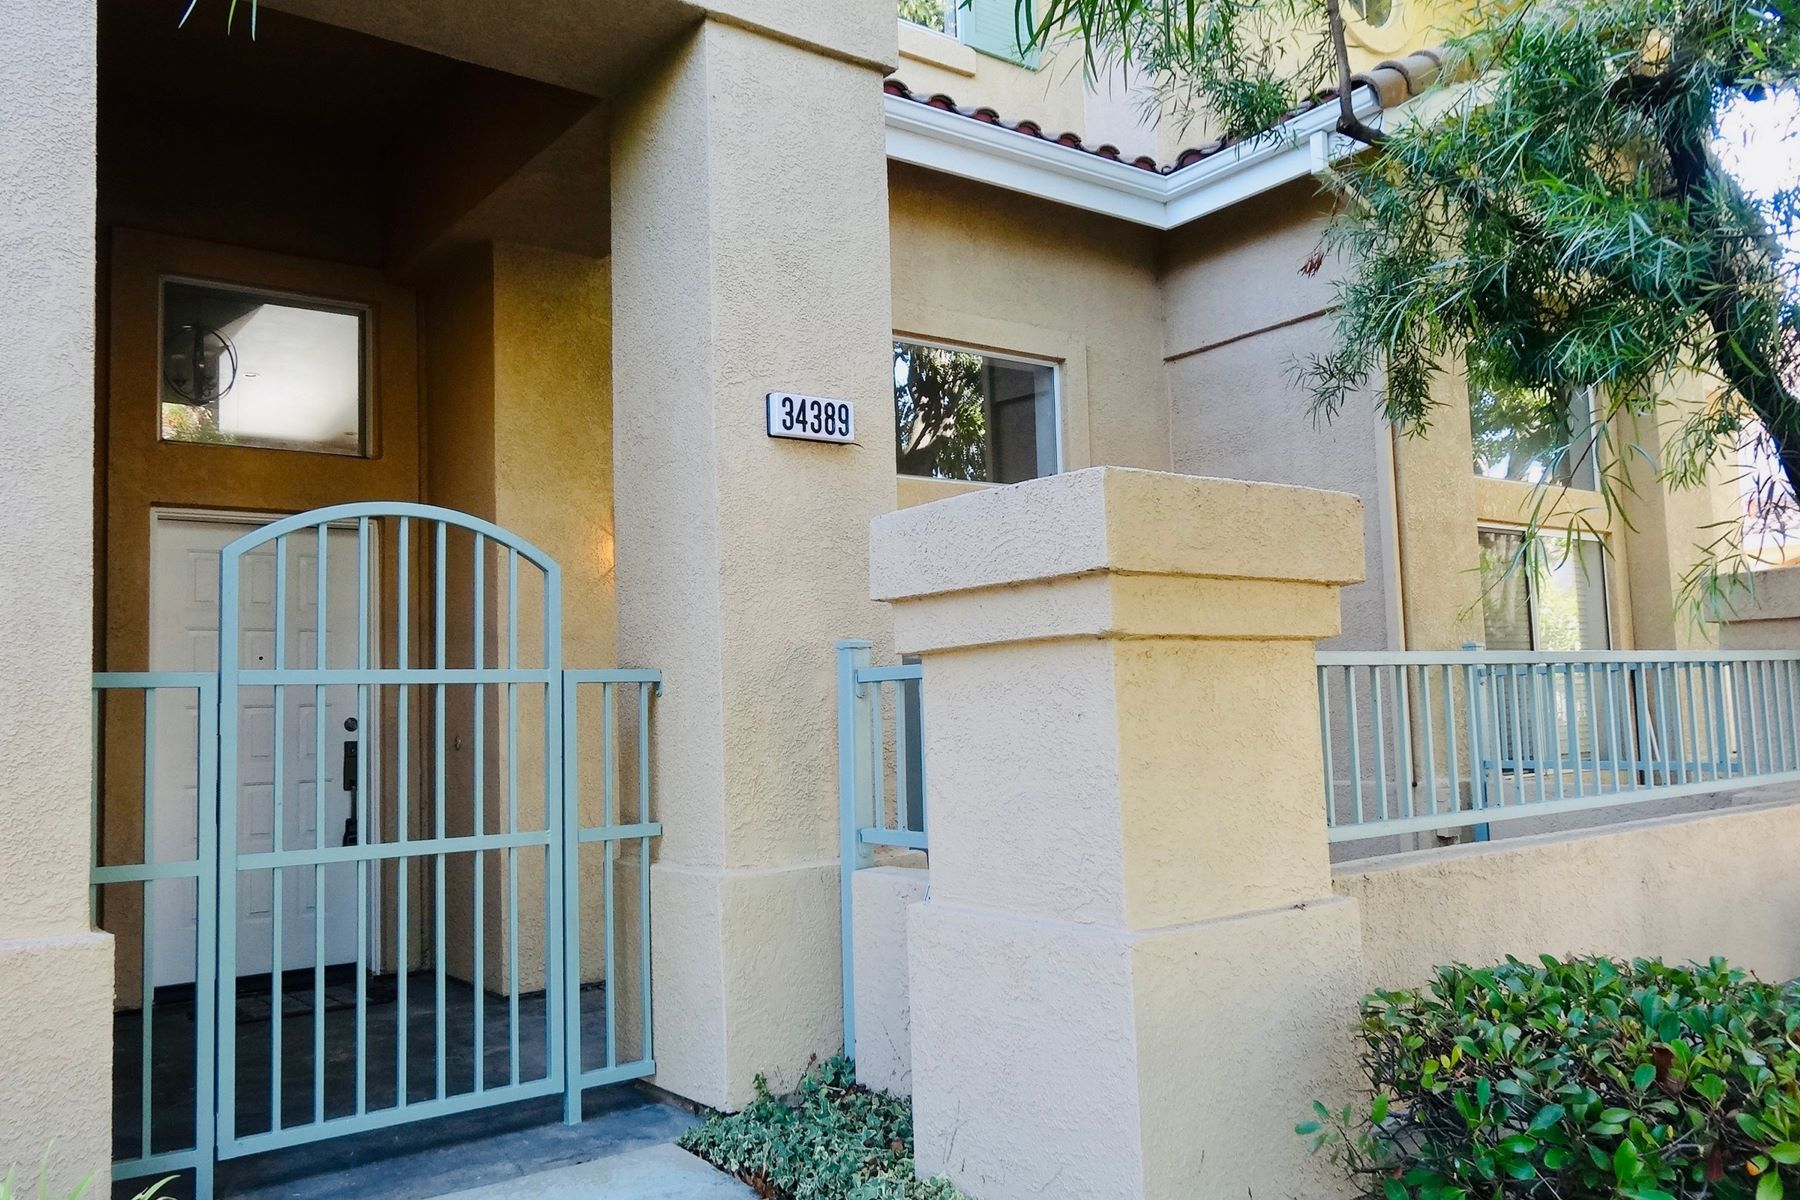 townhouses for Sale at Gorgeous Townhome 34389 Anzio Terrace #23 Fremont, California 94555 United States